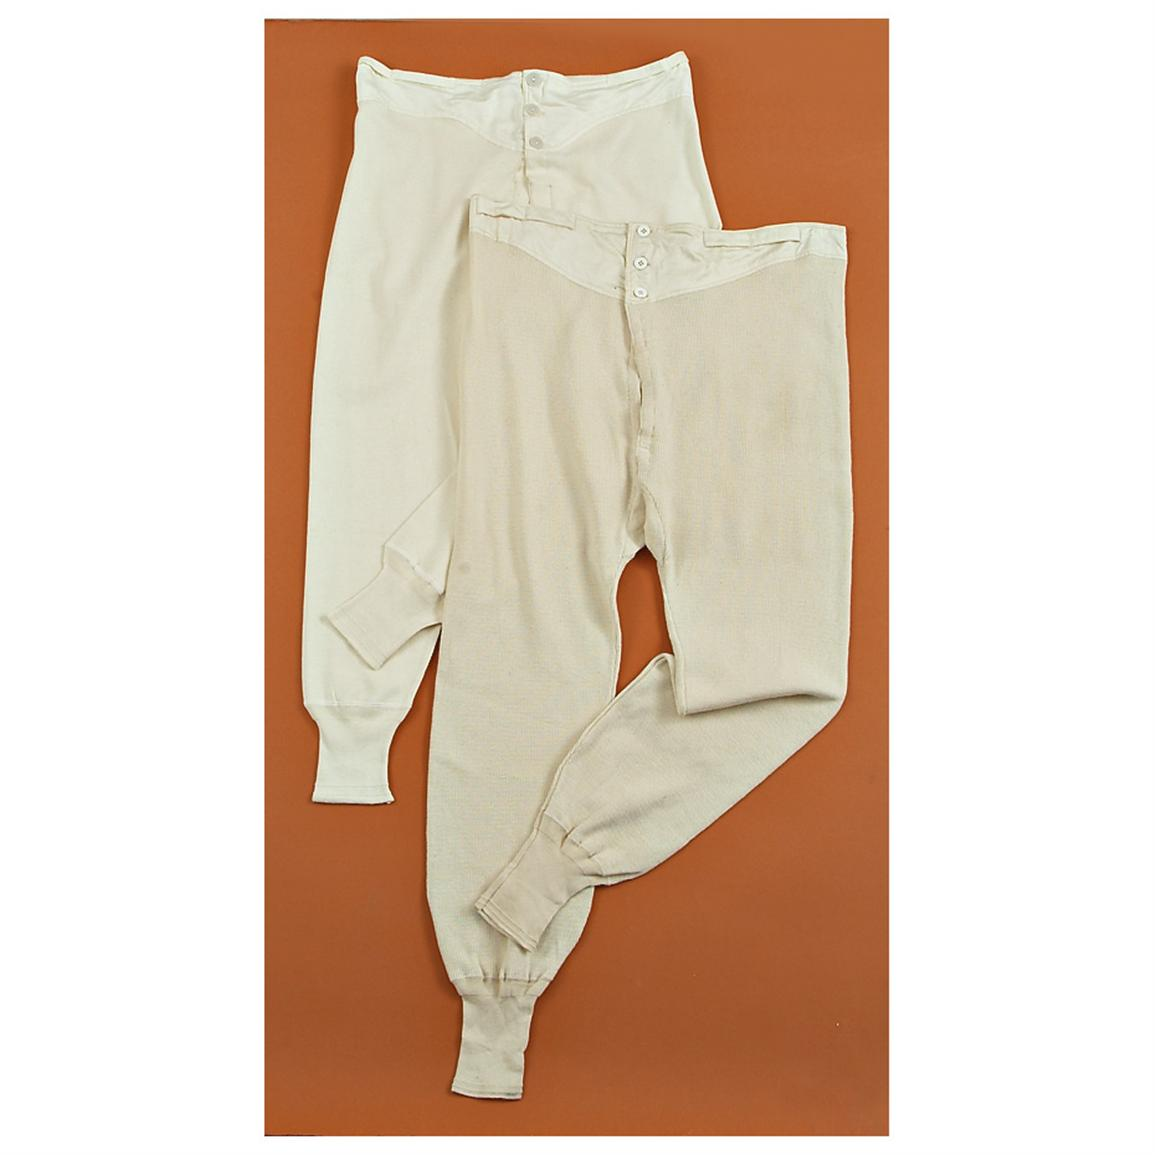 8 - Pk. of Used Swiss Military Surplus Long John Bottoms - 223151 ...